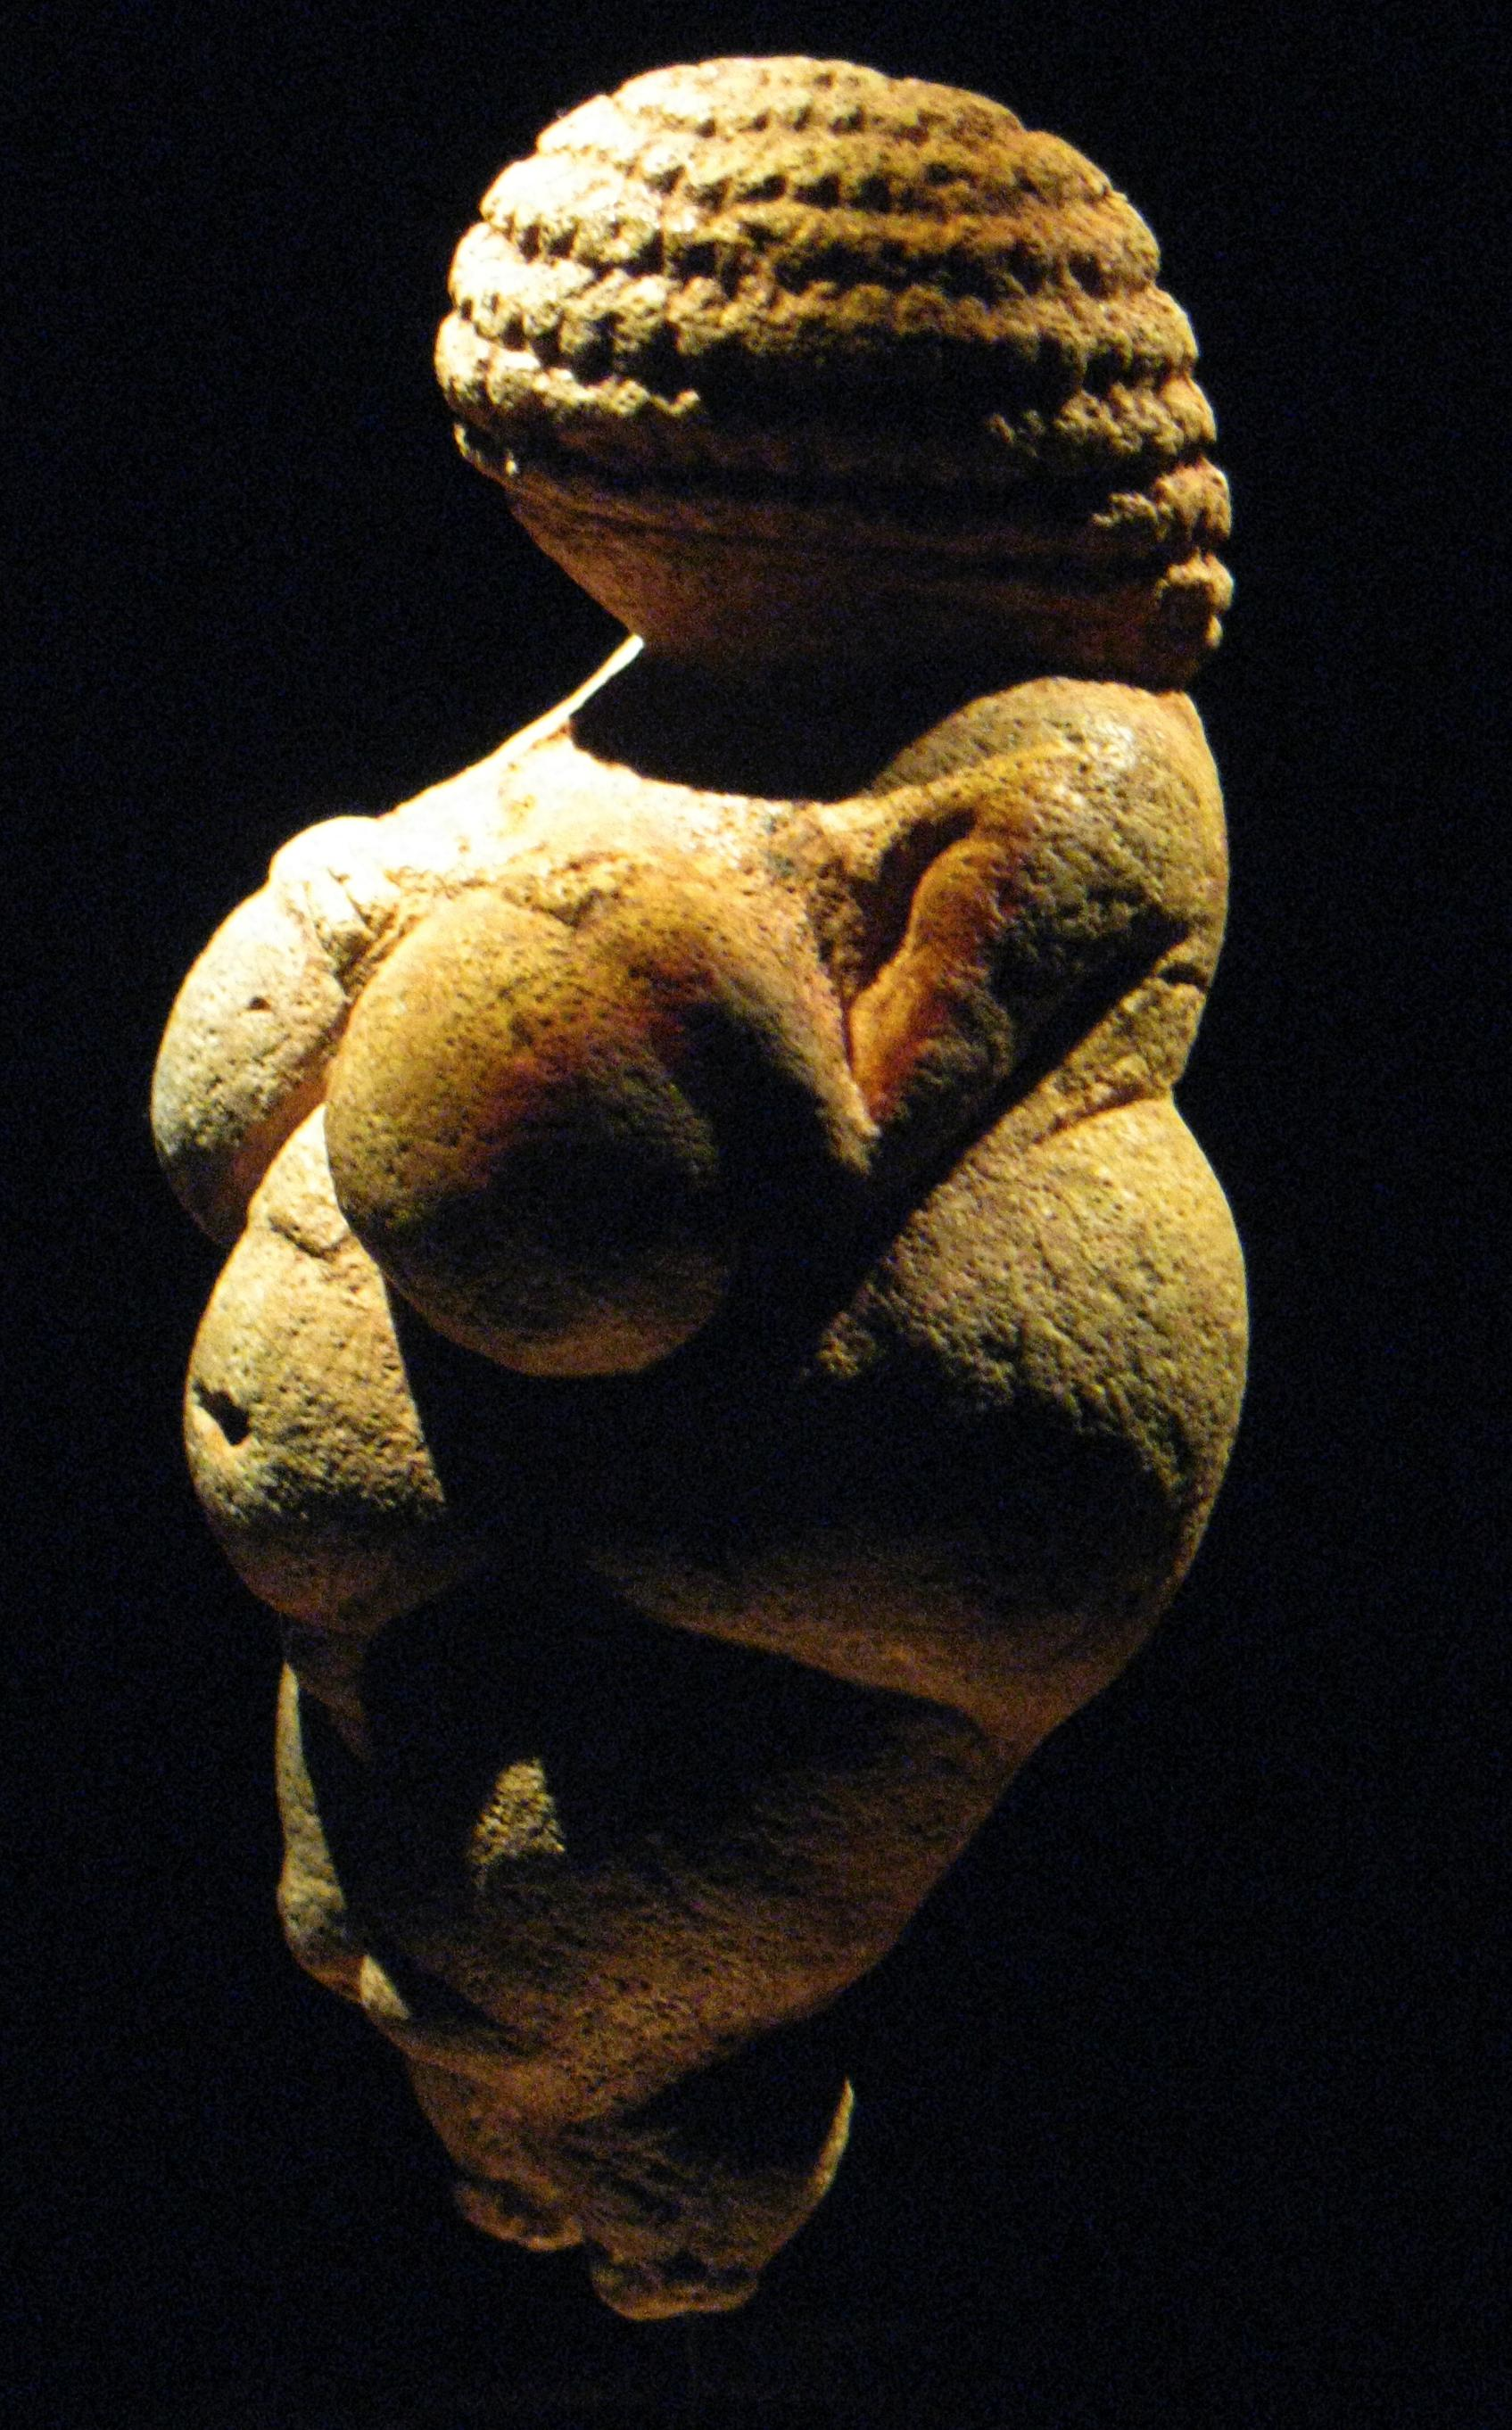 venus of willendorf an annotated bibliography essay The ideal woman 1 compare the culture that produced the venus de willendorf with the culture that produces the barbie doll what common themes do you see in the paleolithic culture that we share or have rejected in modern culture.